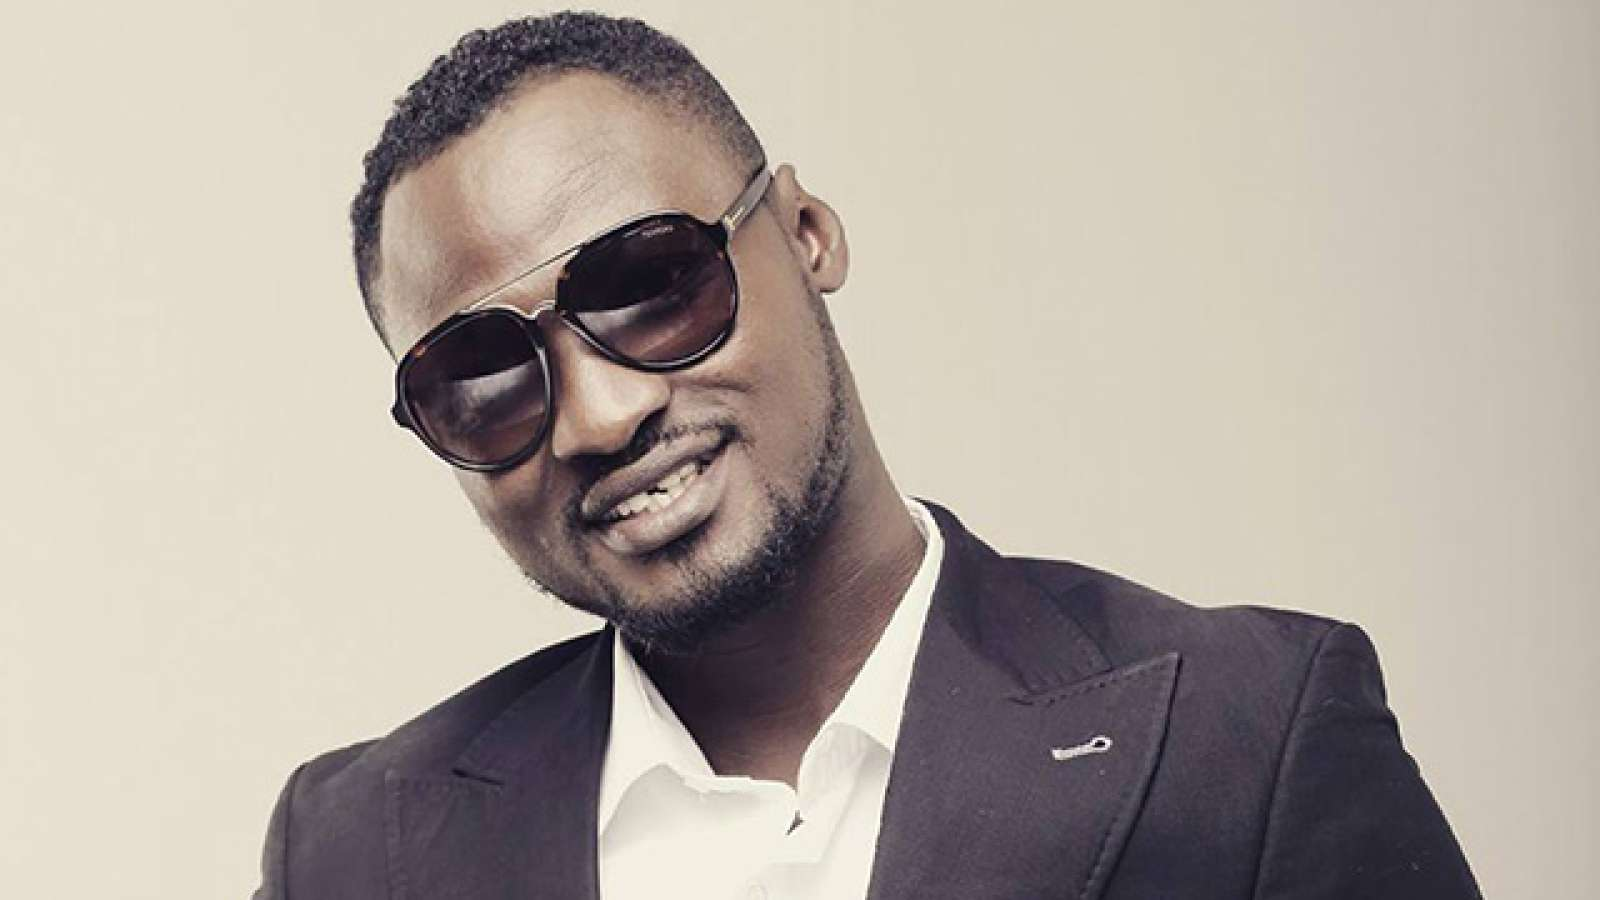 Funny Face seeks the help of children in planning his upcoming wedding